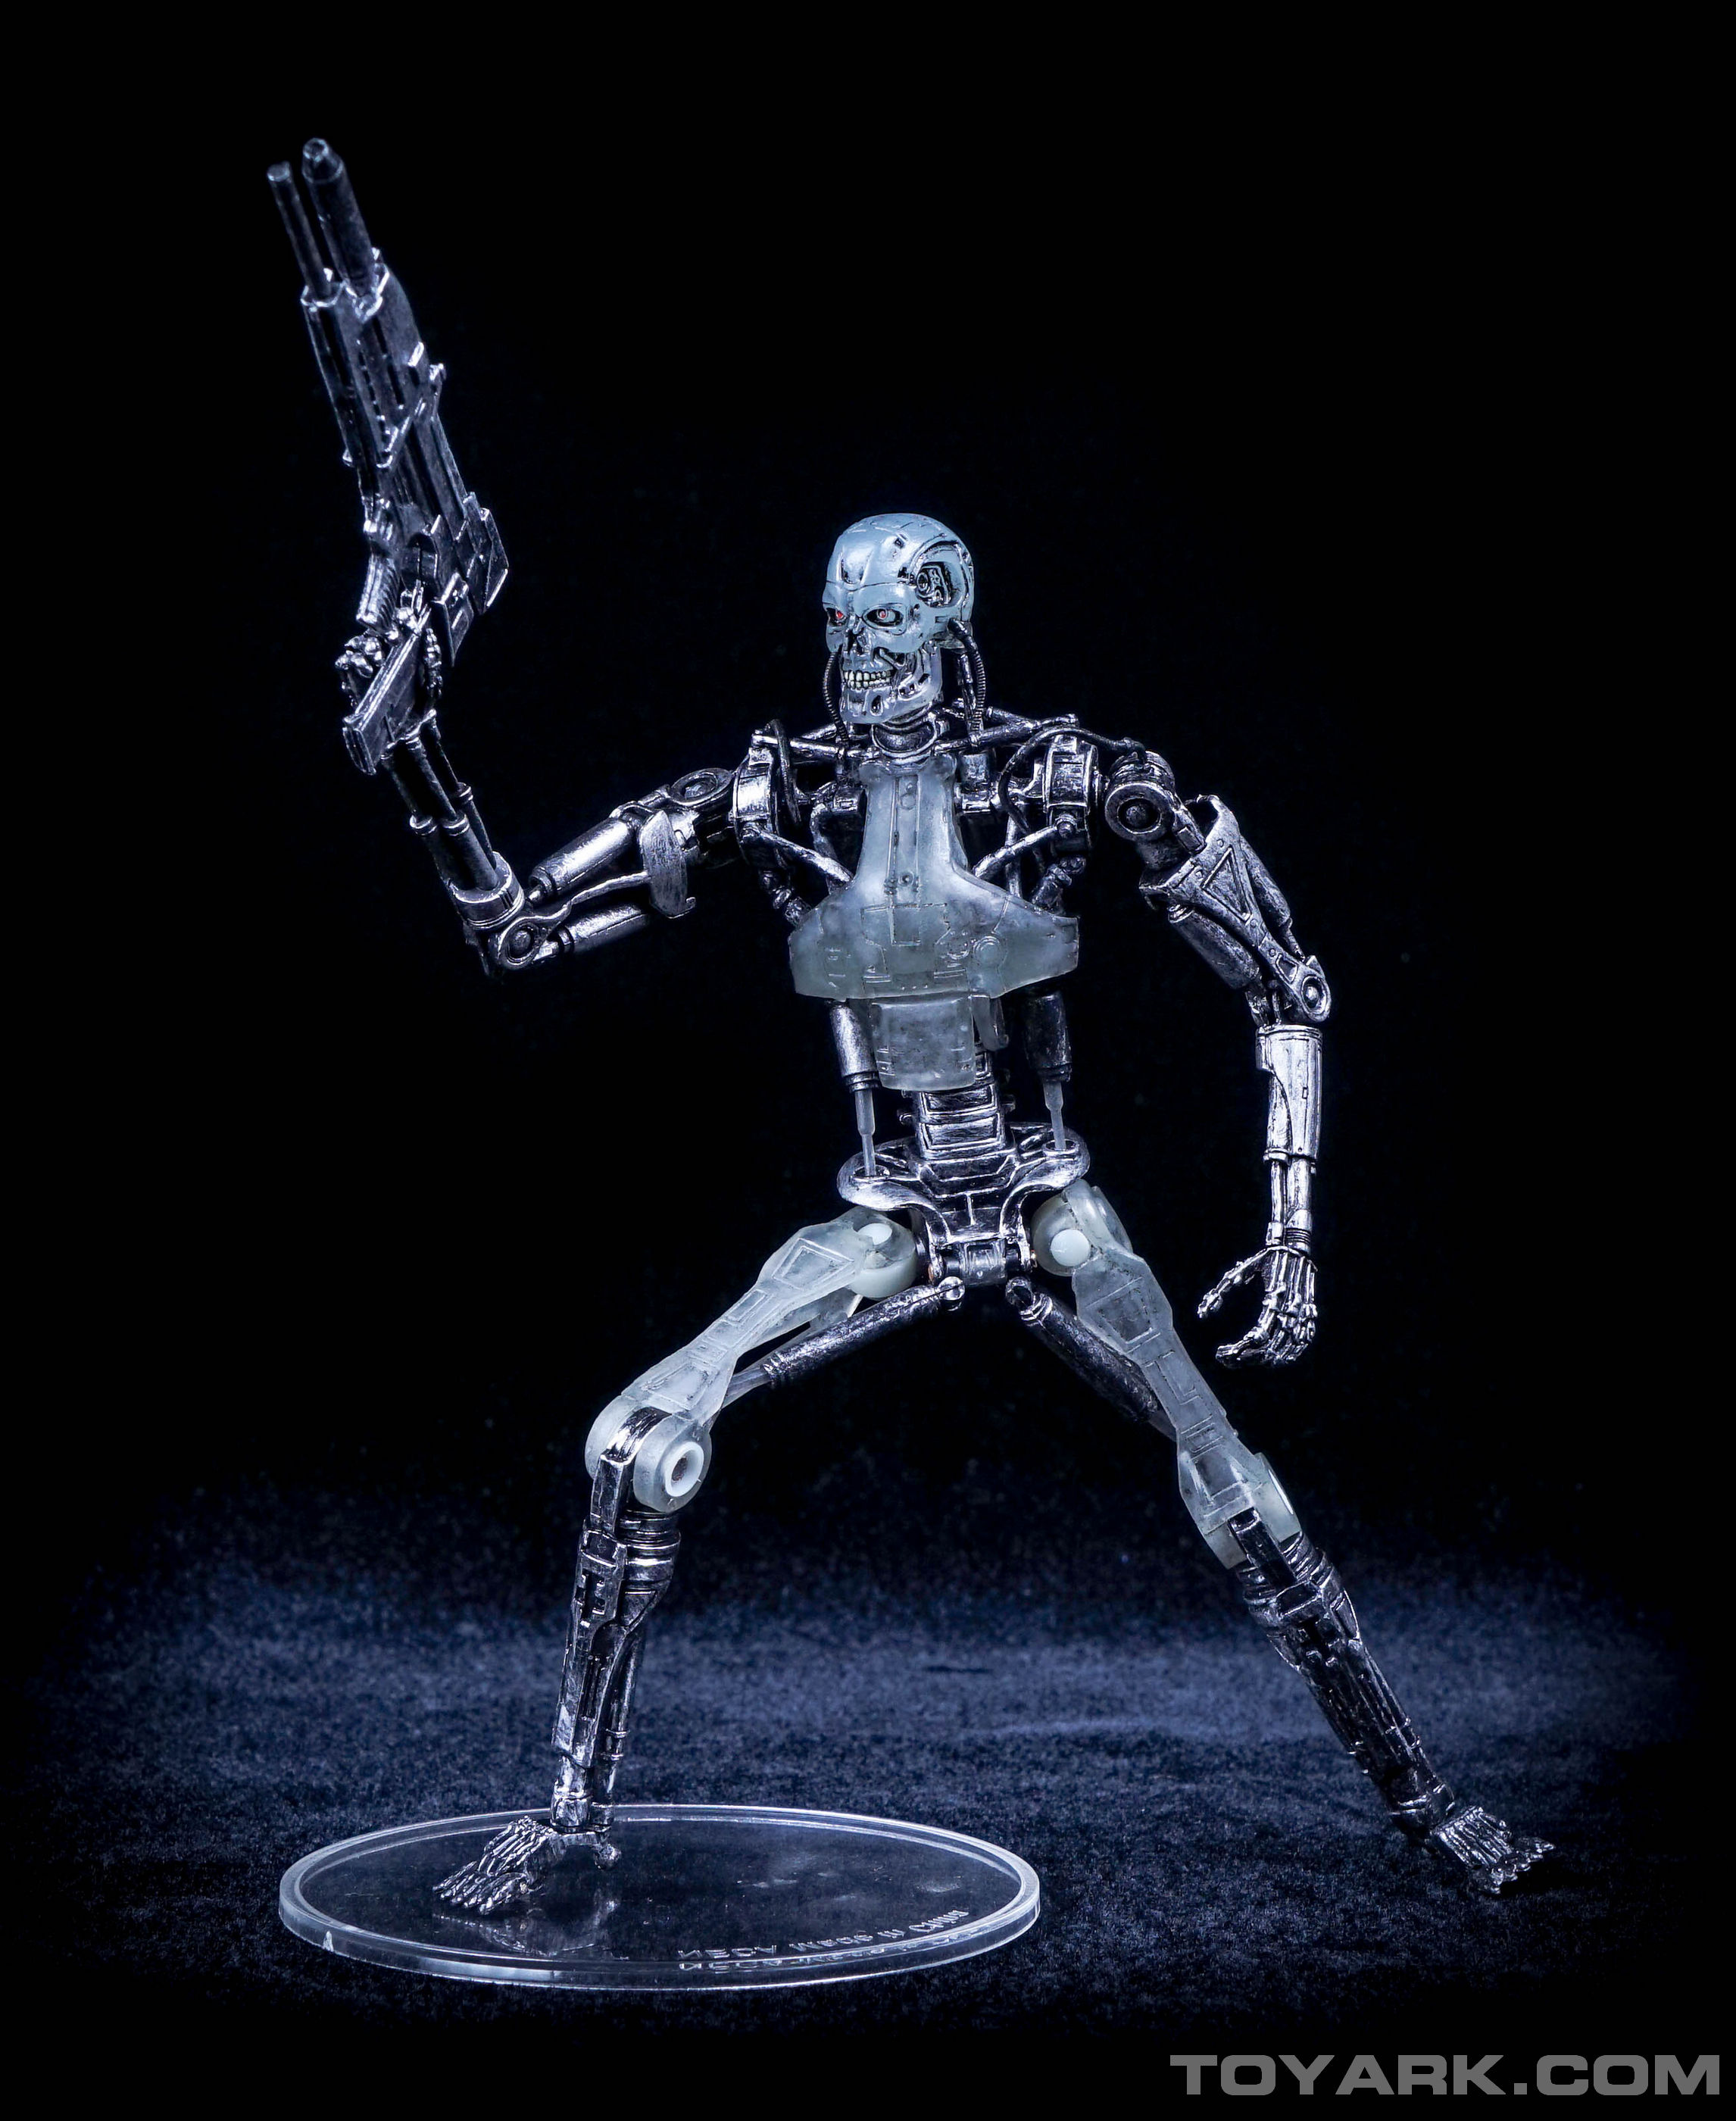 http://news.toyark.com/wp-content/uploads/sites/4/2015/08/Terminator-2-T-800-Endoglow-022.jpg